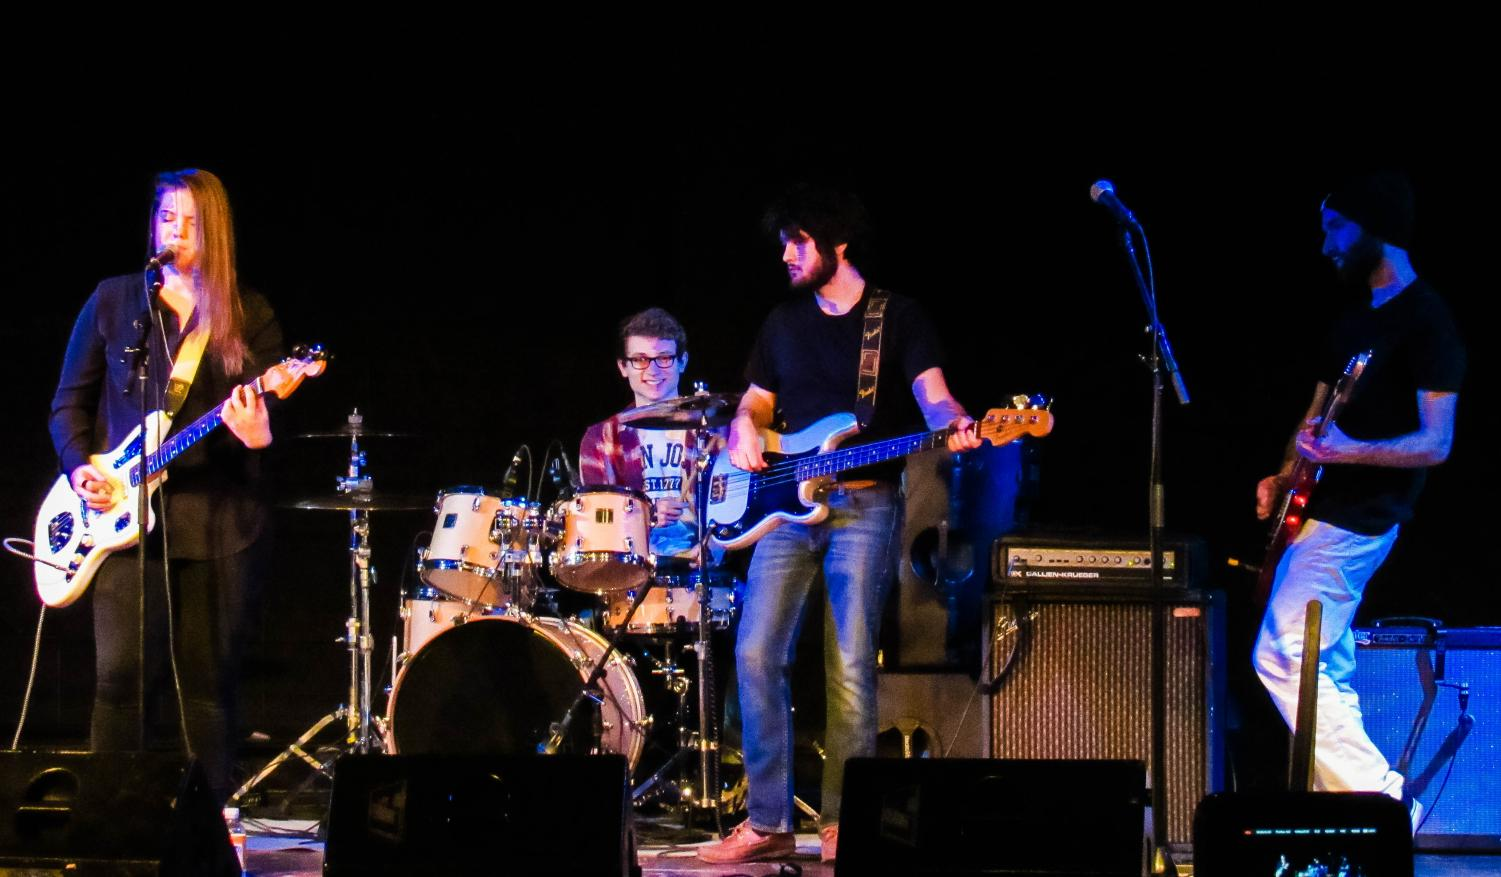 Four bands competed in the second annual ShamROCK It Out Battle of the Bands on March 21 in Alumni Hall. WAVES, pictured above, won first place. The band Leap First came in second, Solor came in third and Lucid Animals also competed.